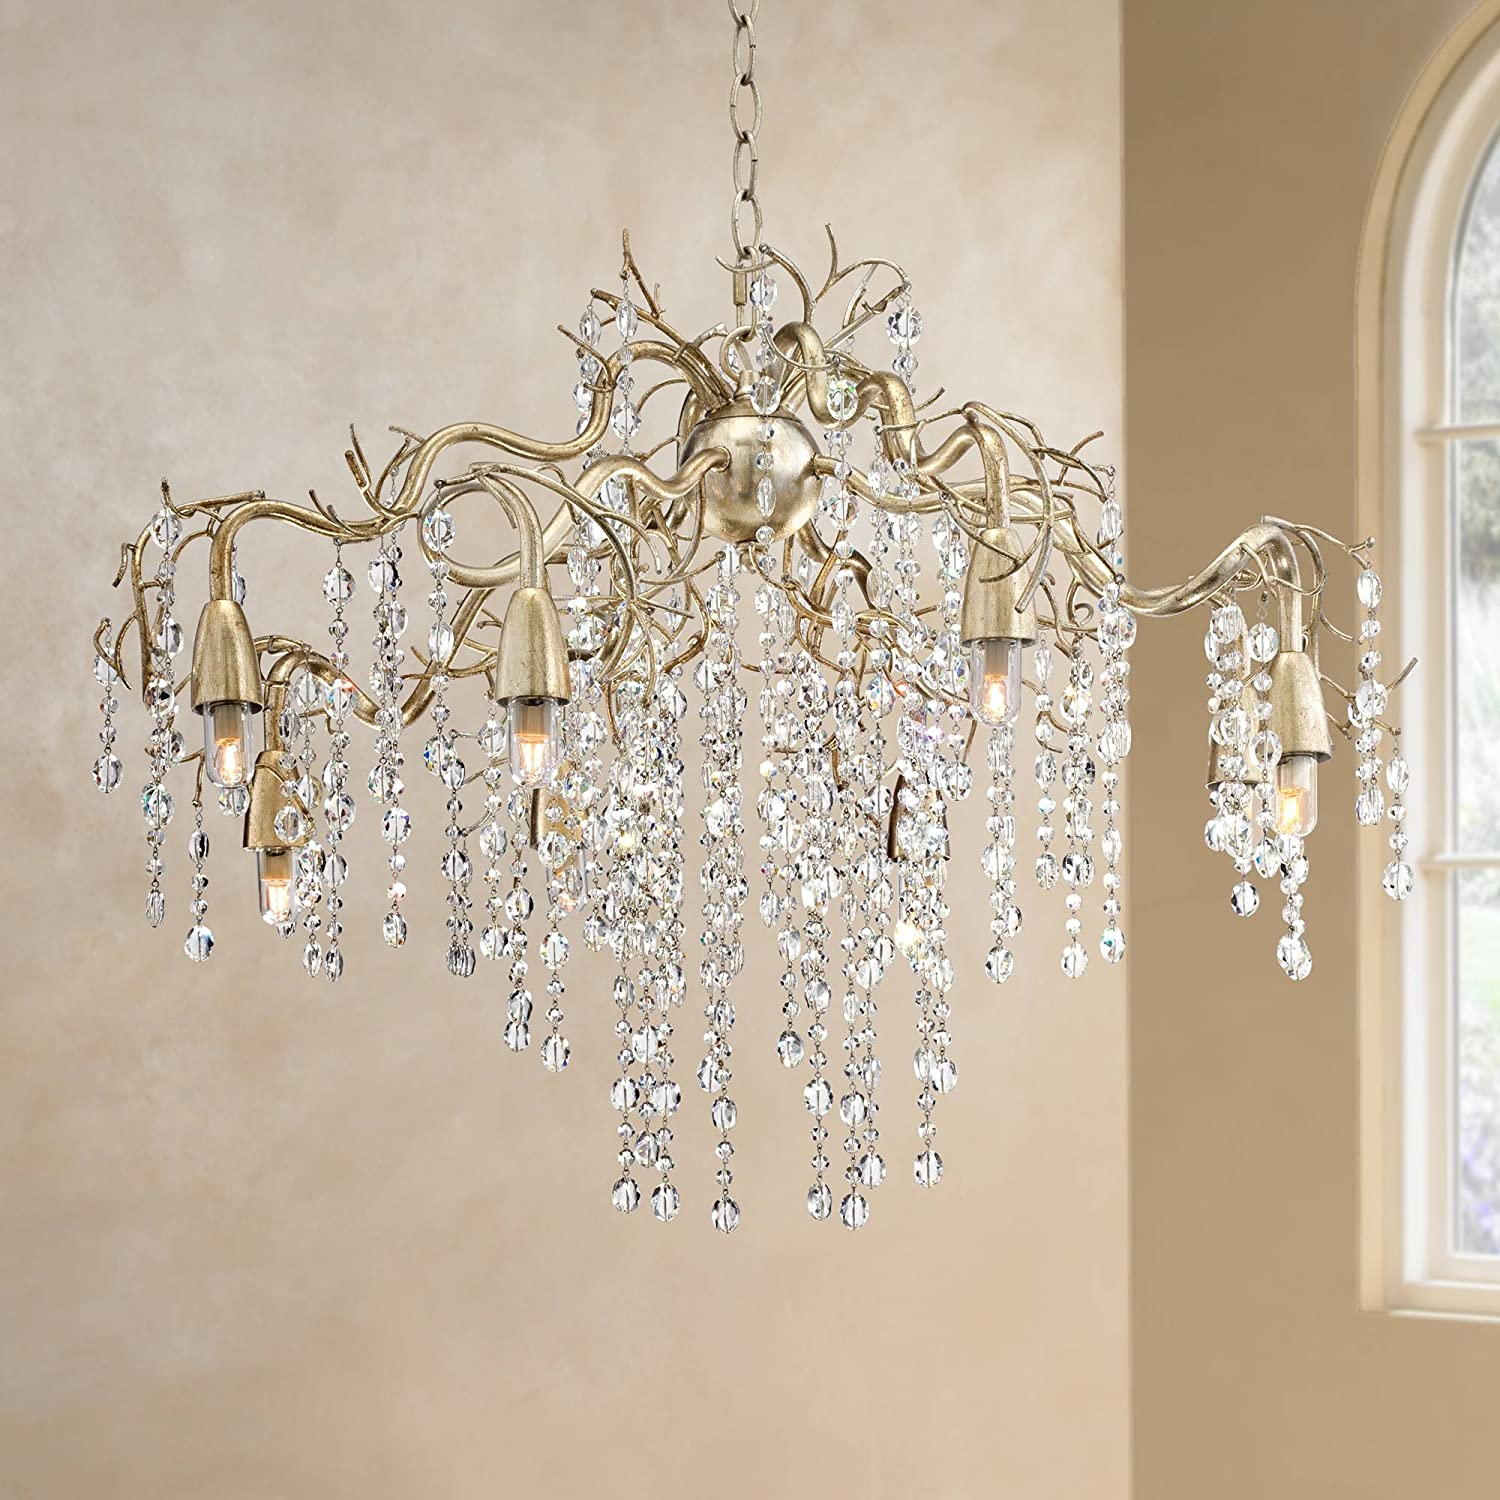 Branches Silver Champagne Large Chandelier 31 Wide Modern Clear Crystal Strands 8 Light Fixture For Dining Room House Foyer Entryway Kitchen Bedroom Living Room High Ceilings Possini Euro Design Amazon Com